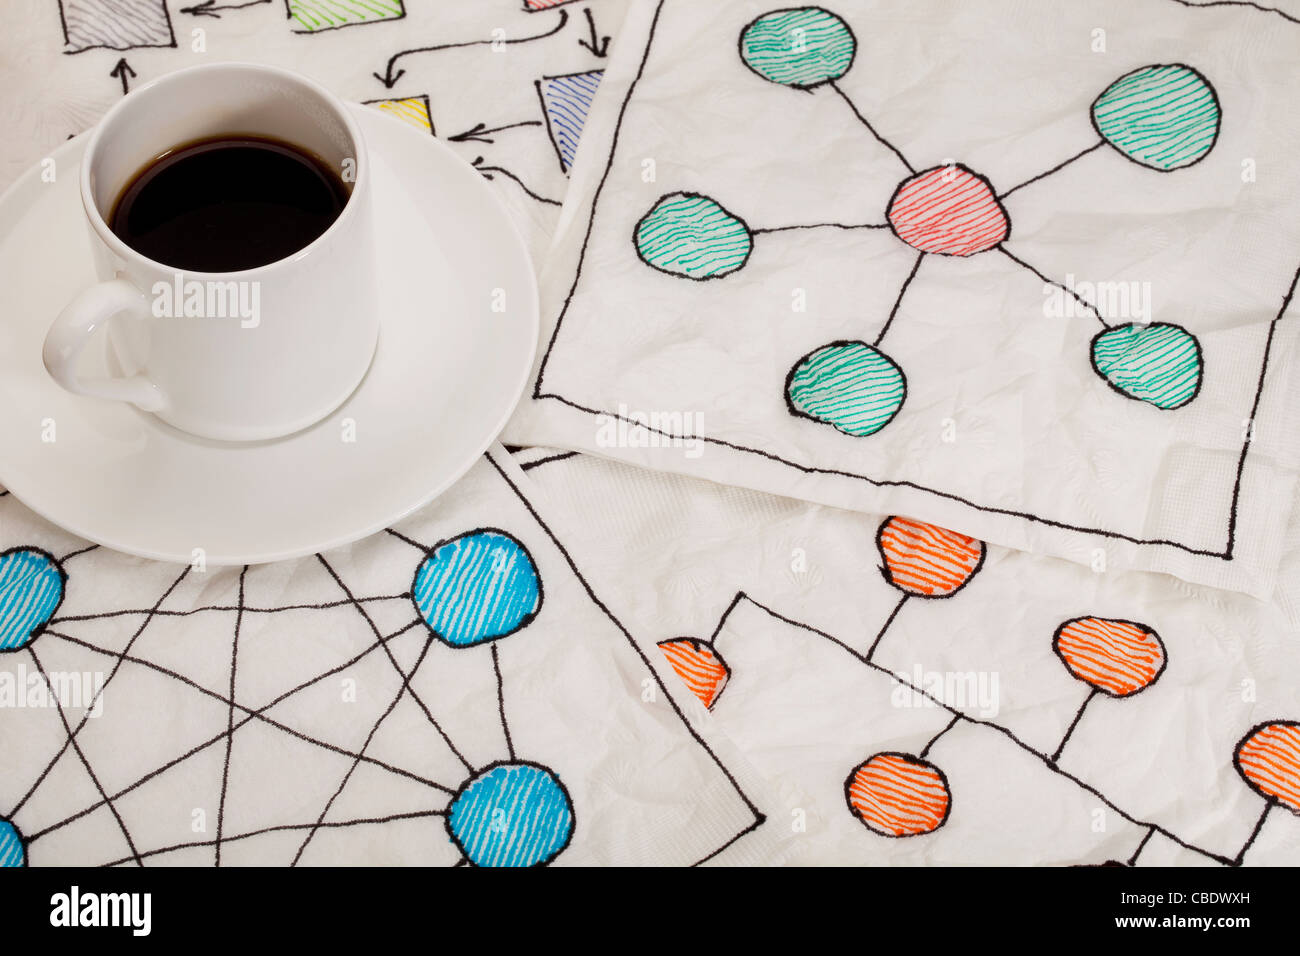 different network schematics sketched on white napkins with espresso coffee cup - Stock Image